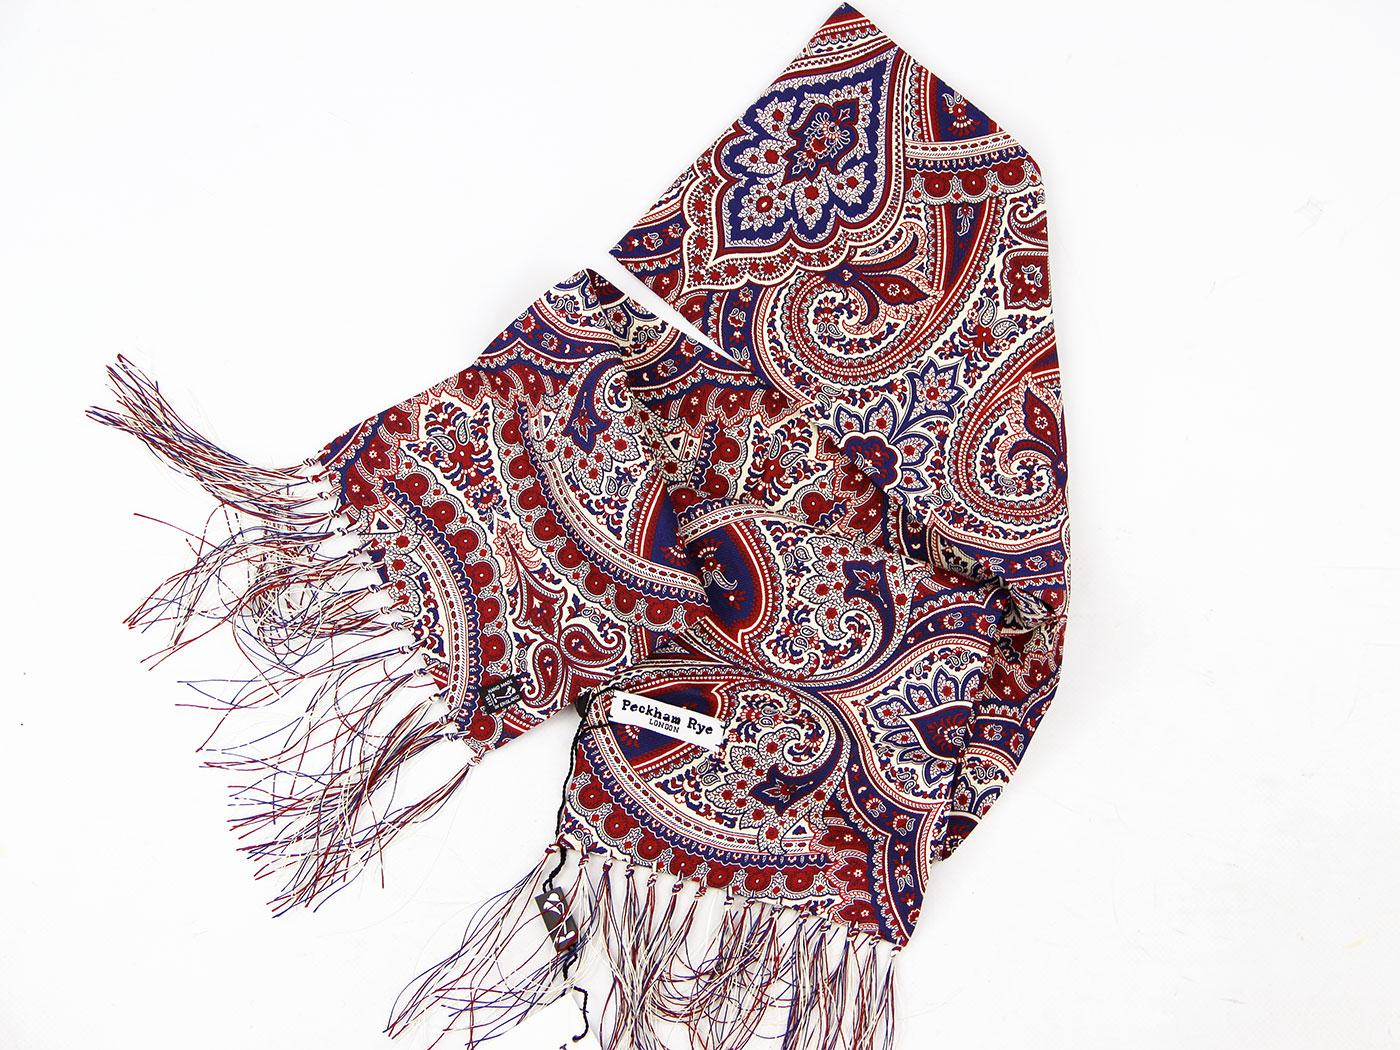 PECKHAM RYE Baroque Paisley Scarf Navy/Cream/Red